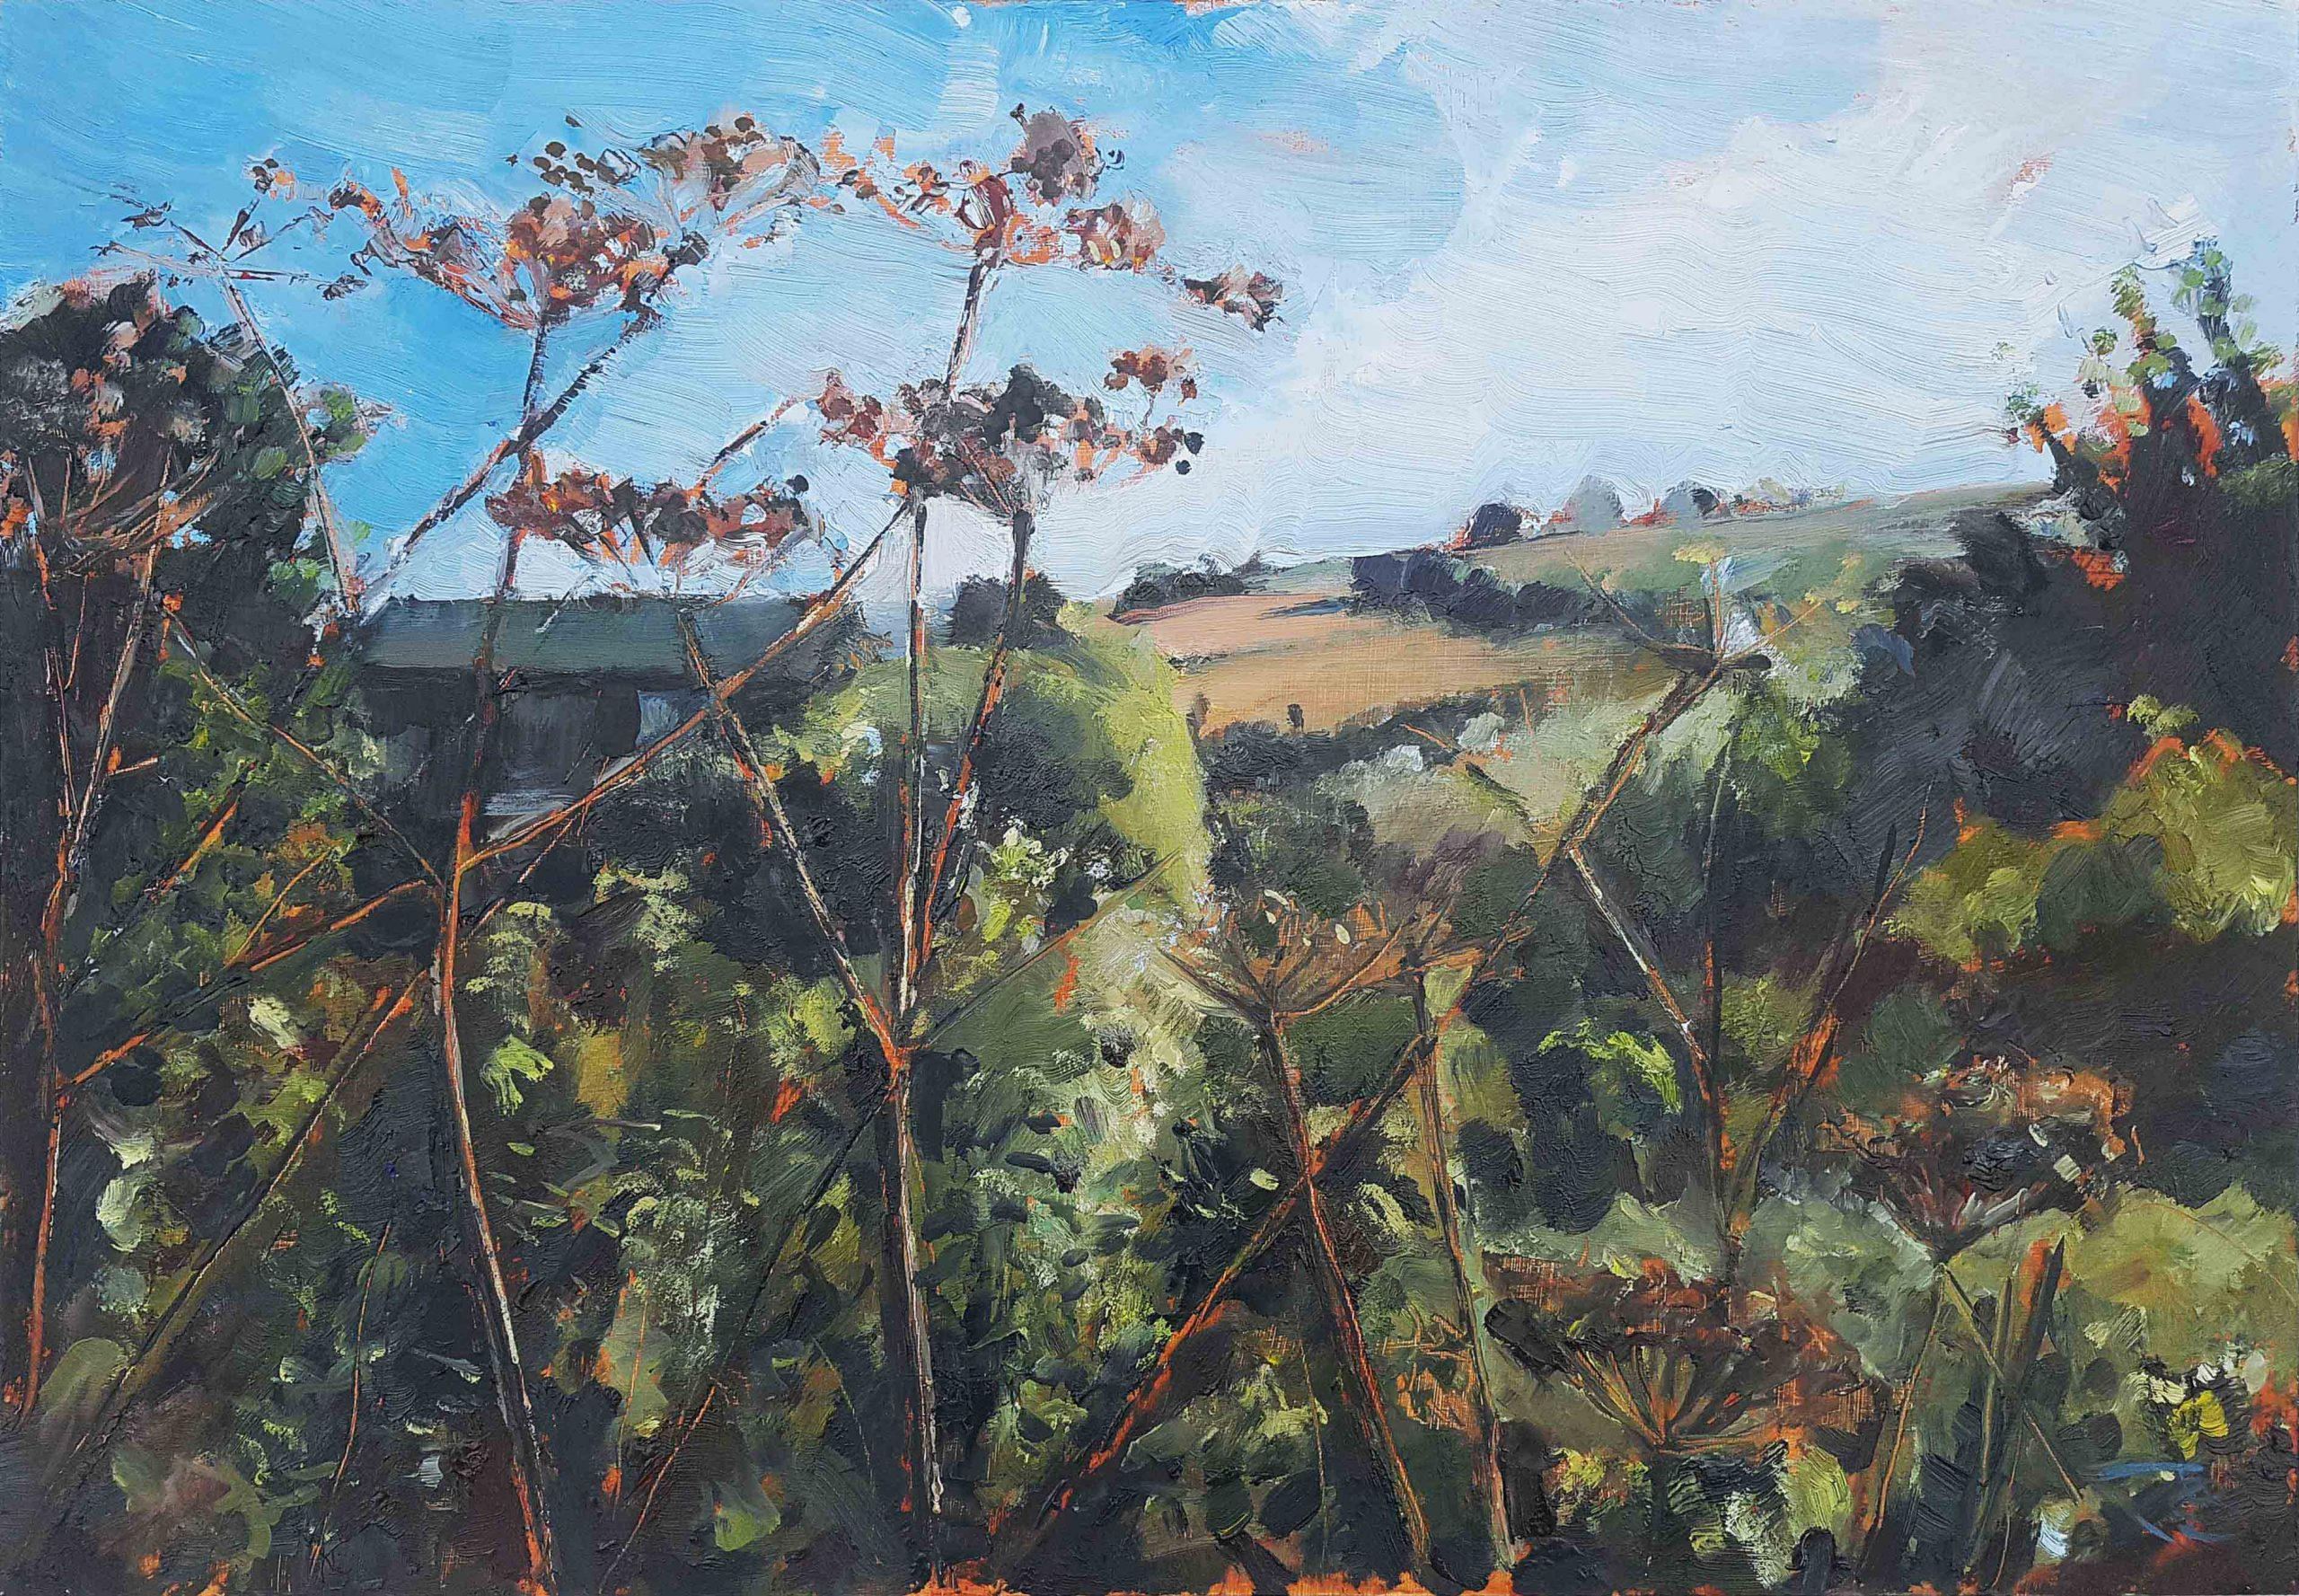 Sanctuary Landscape Painting Showing Summery Fields, Umbellifer seed heads and Undergrowth